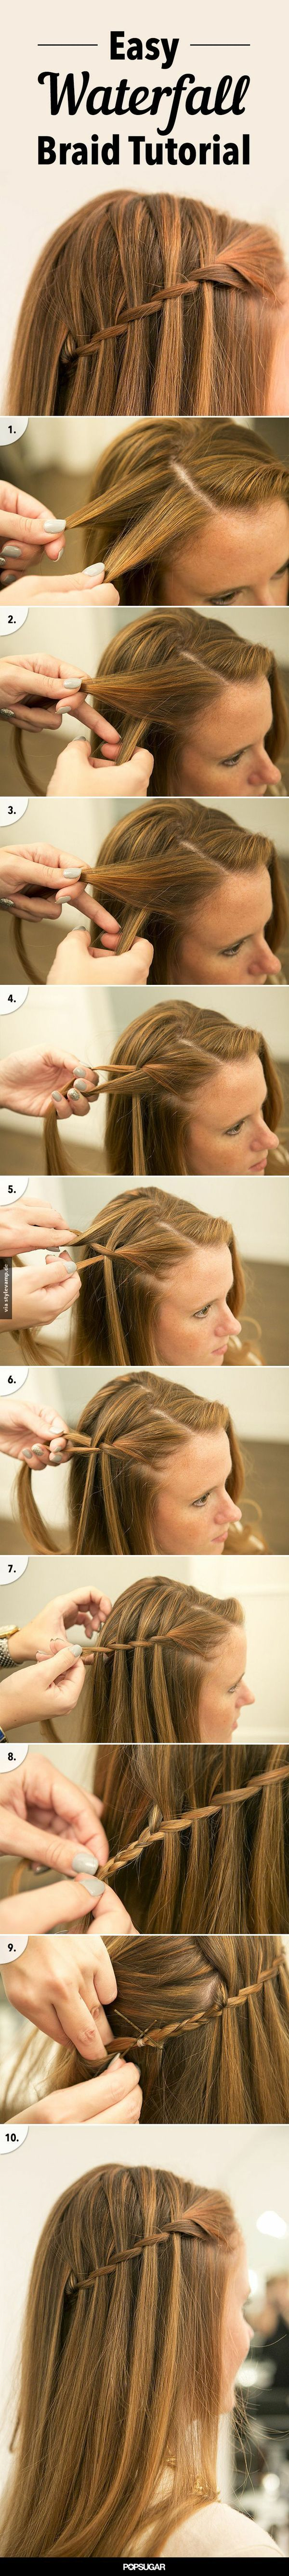 The Waterfall Braid Tutorial